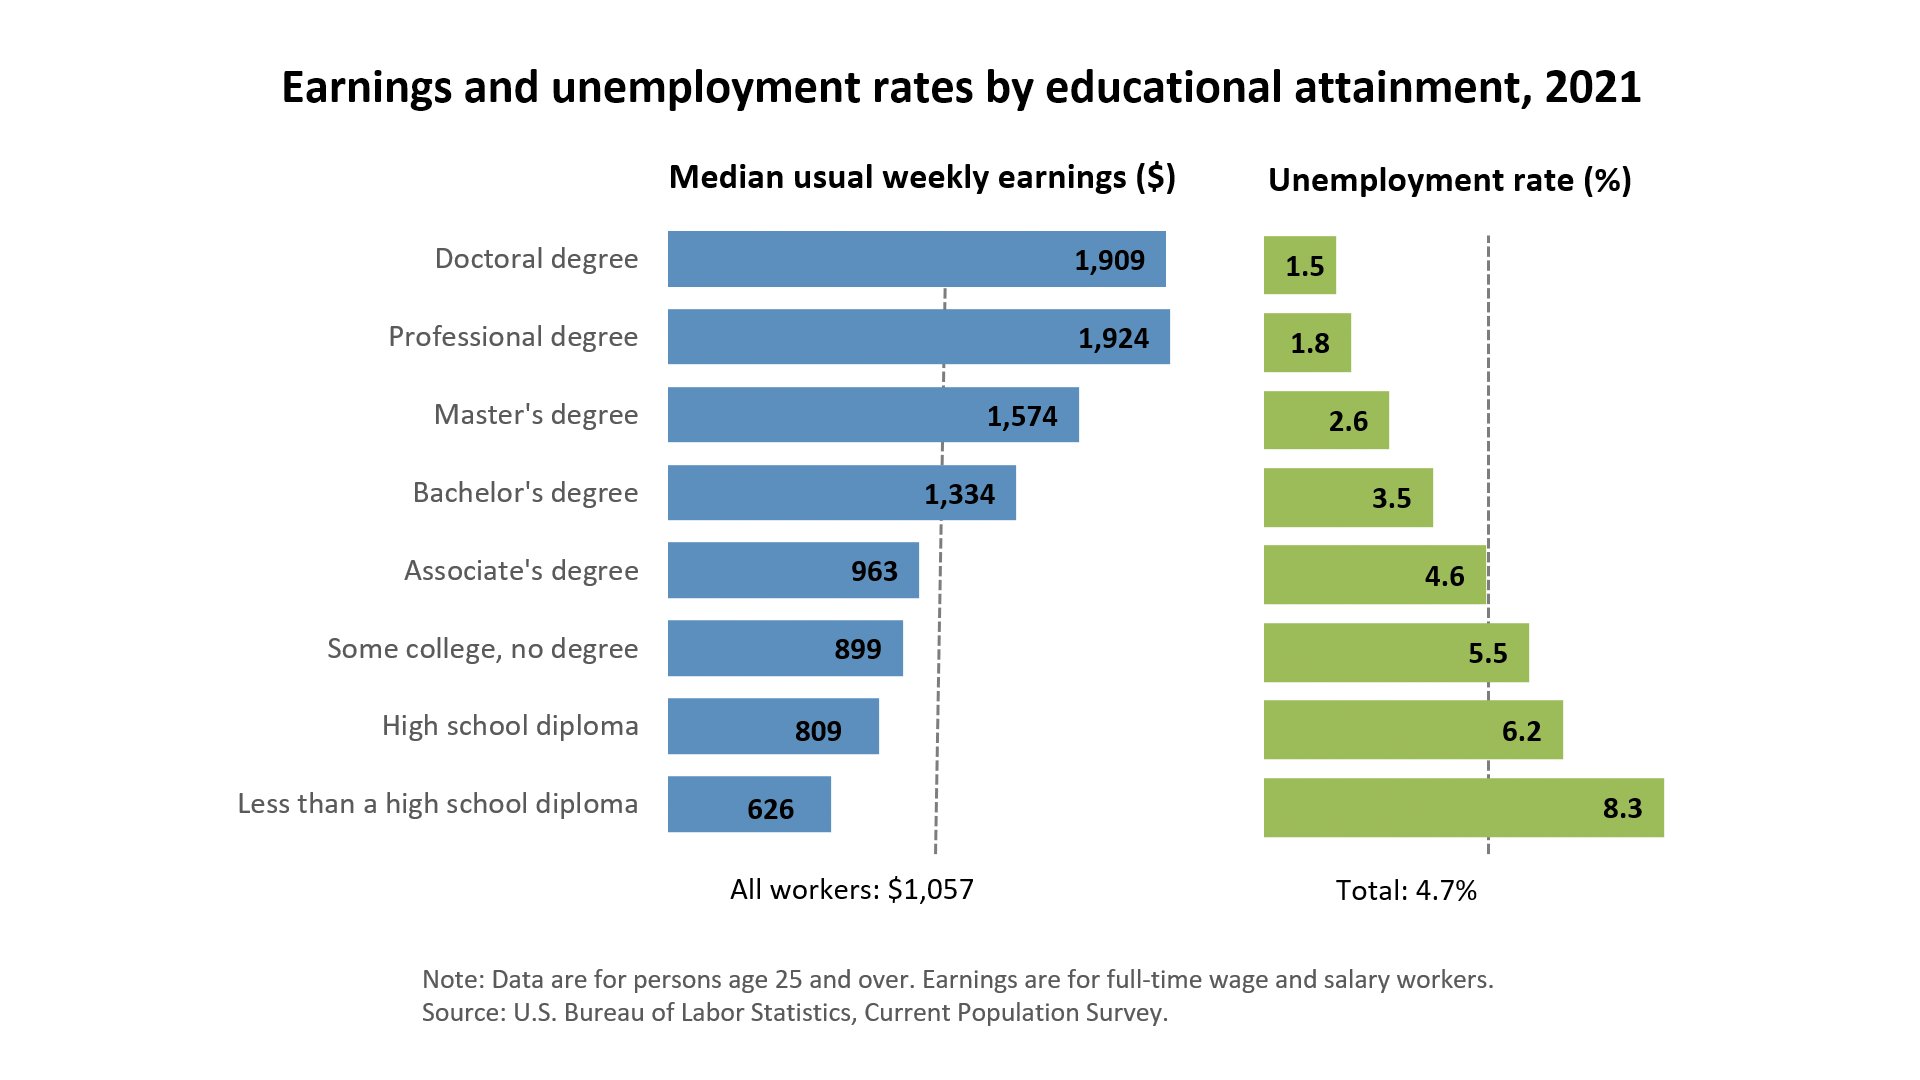 Earnings and unemployment rates by educational attainment chart